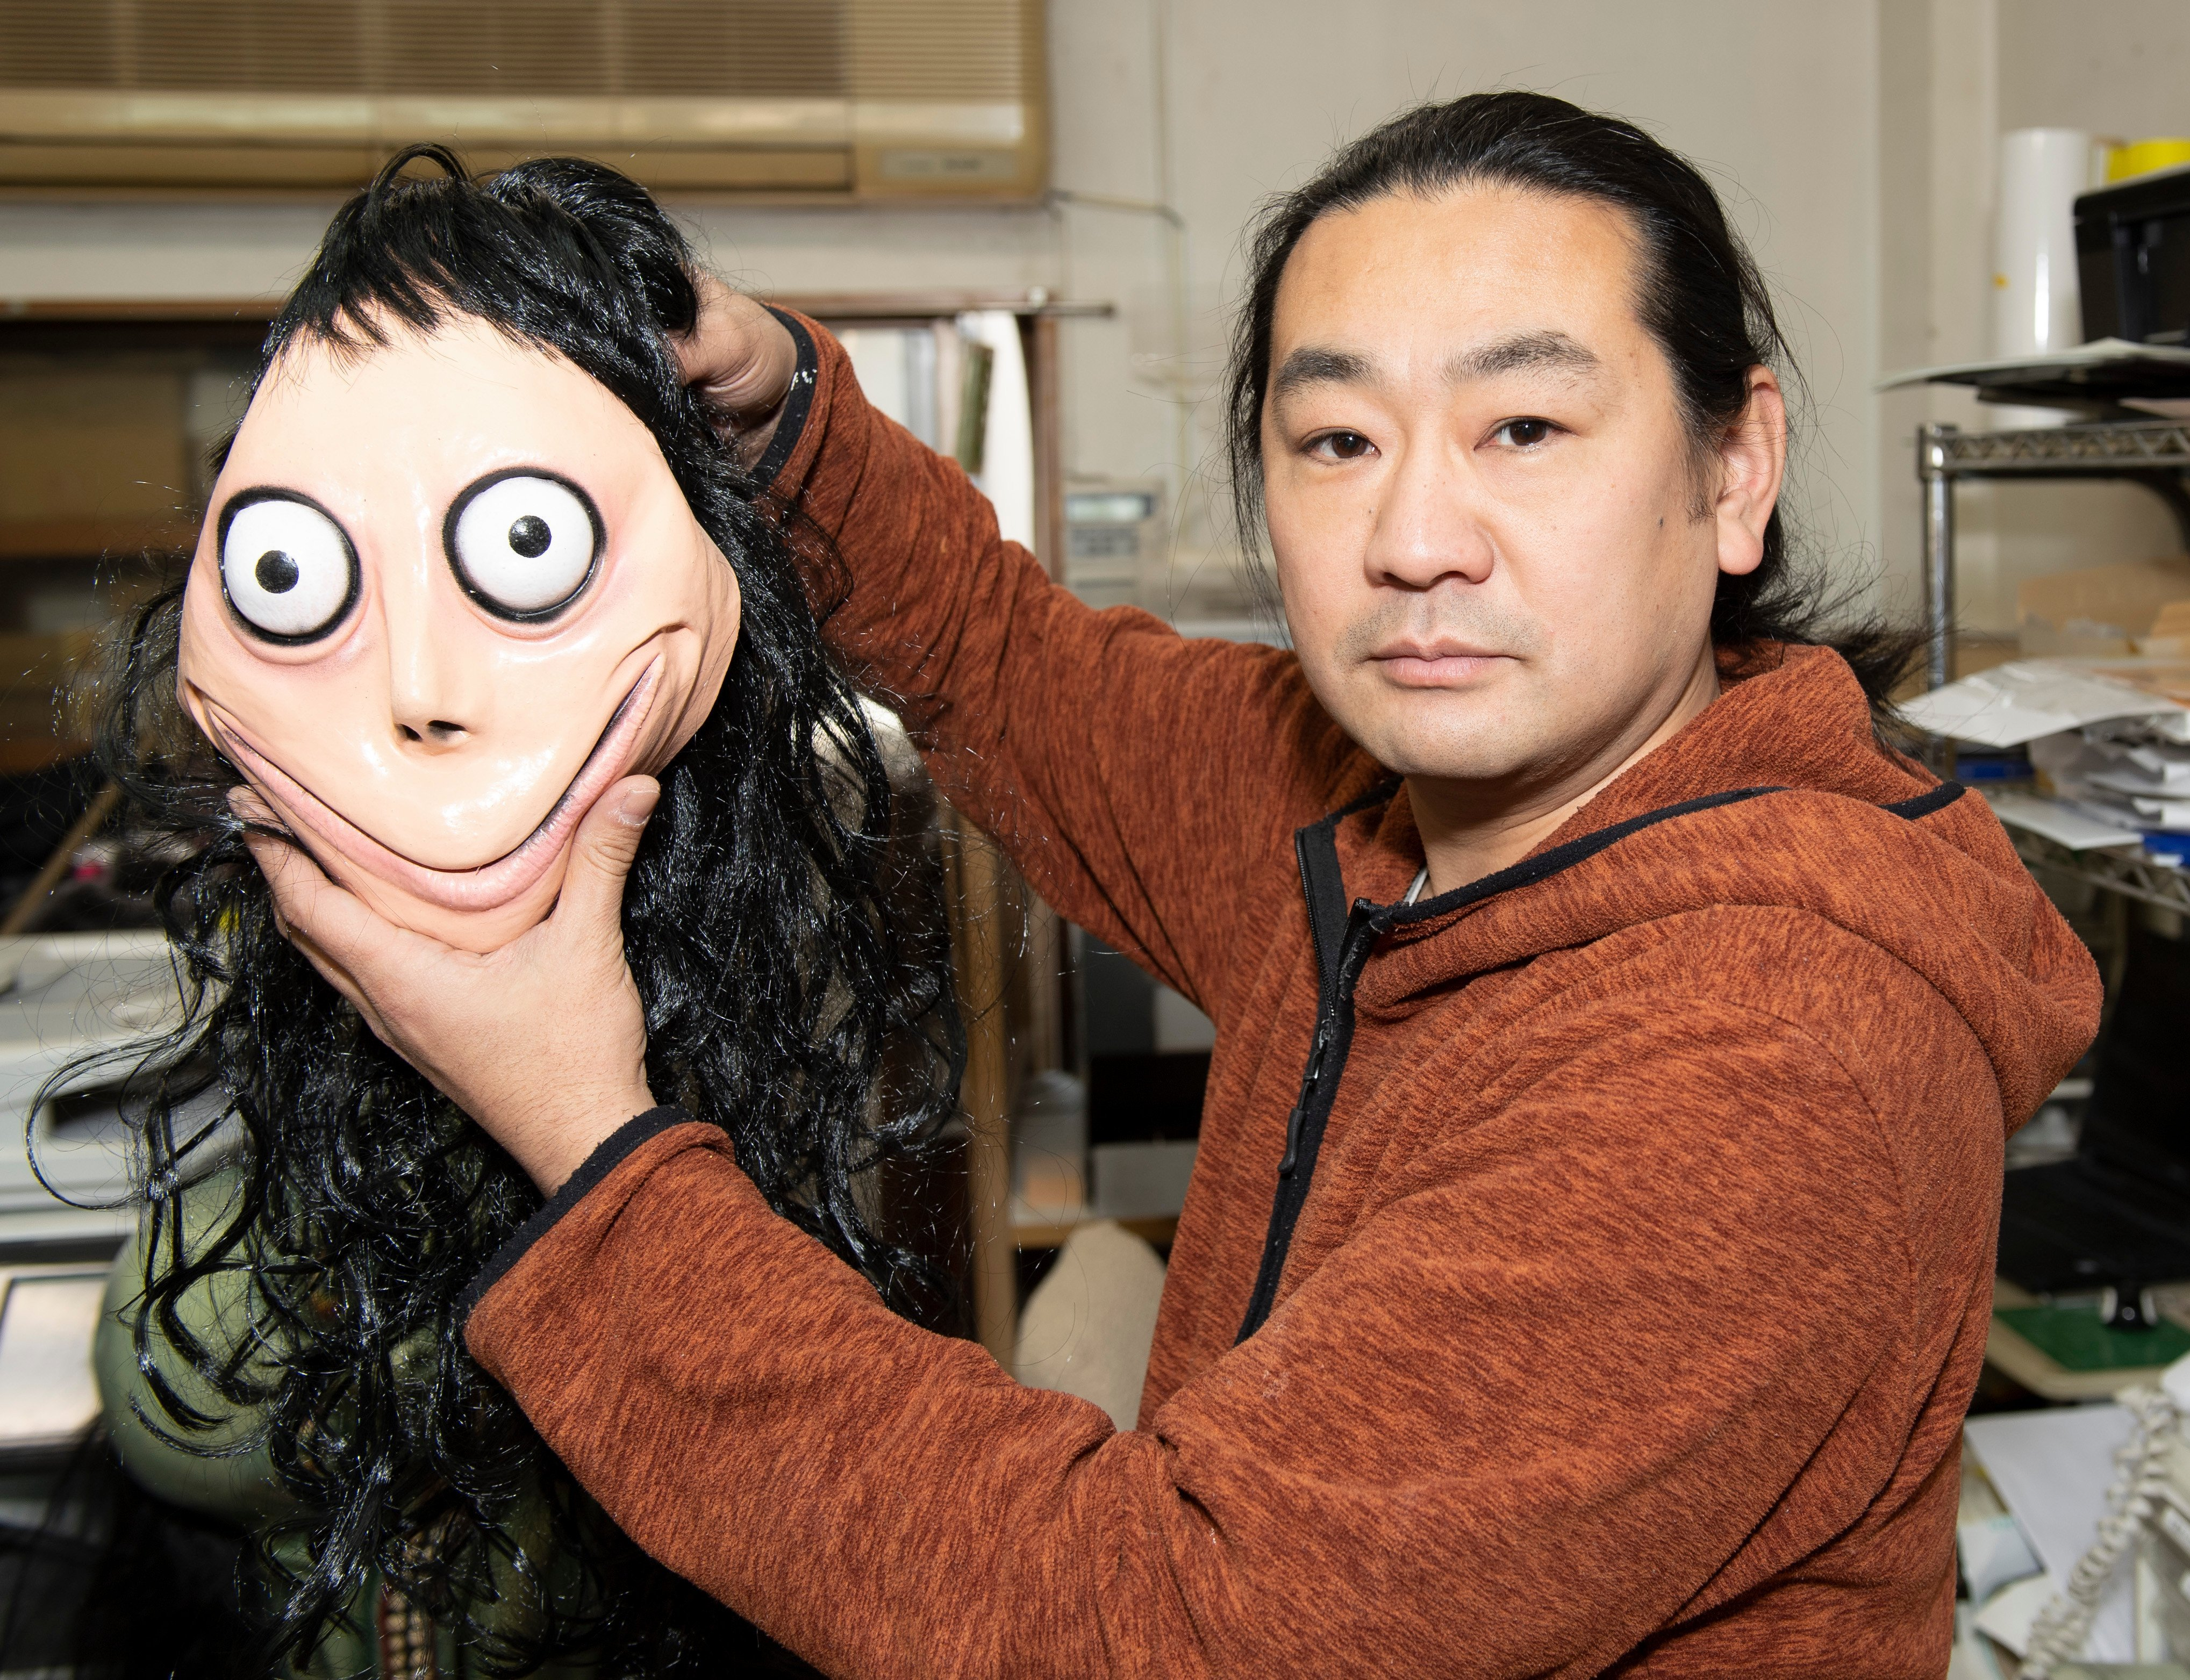 Momo 'suicide' puppet maker says kids shouldn't fear horrifying beast because it's been destroyed insisting 'the curse is gone'